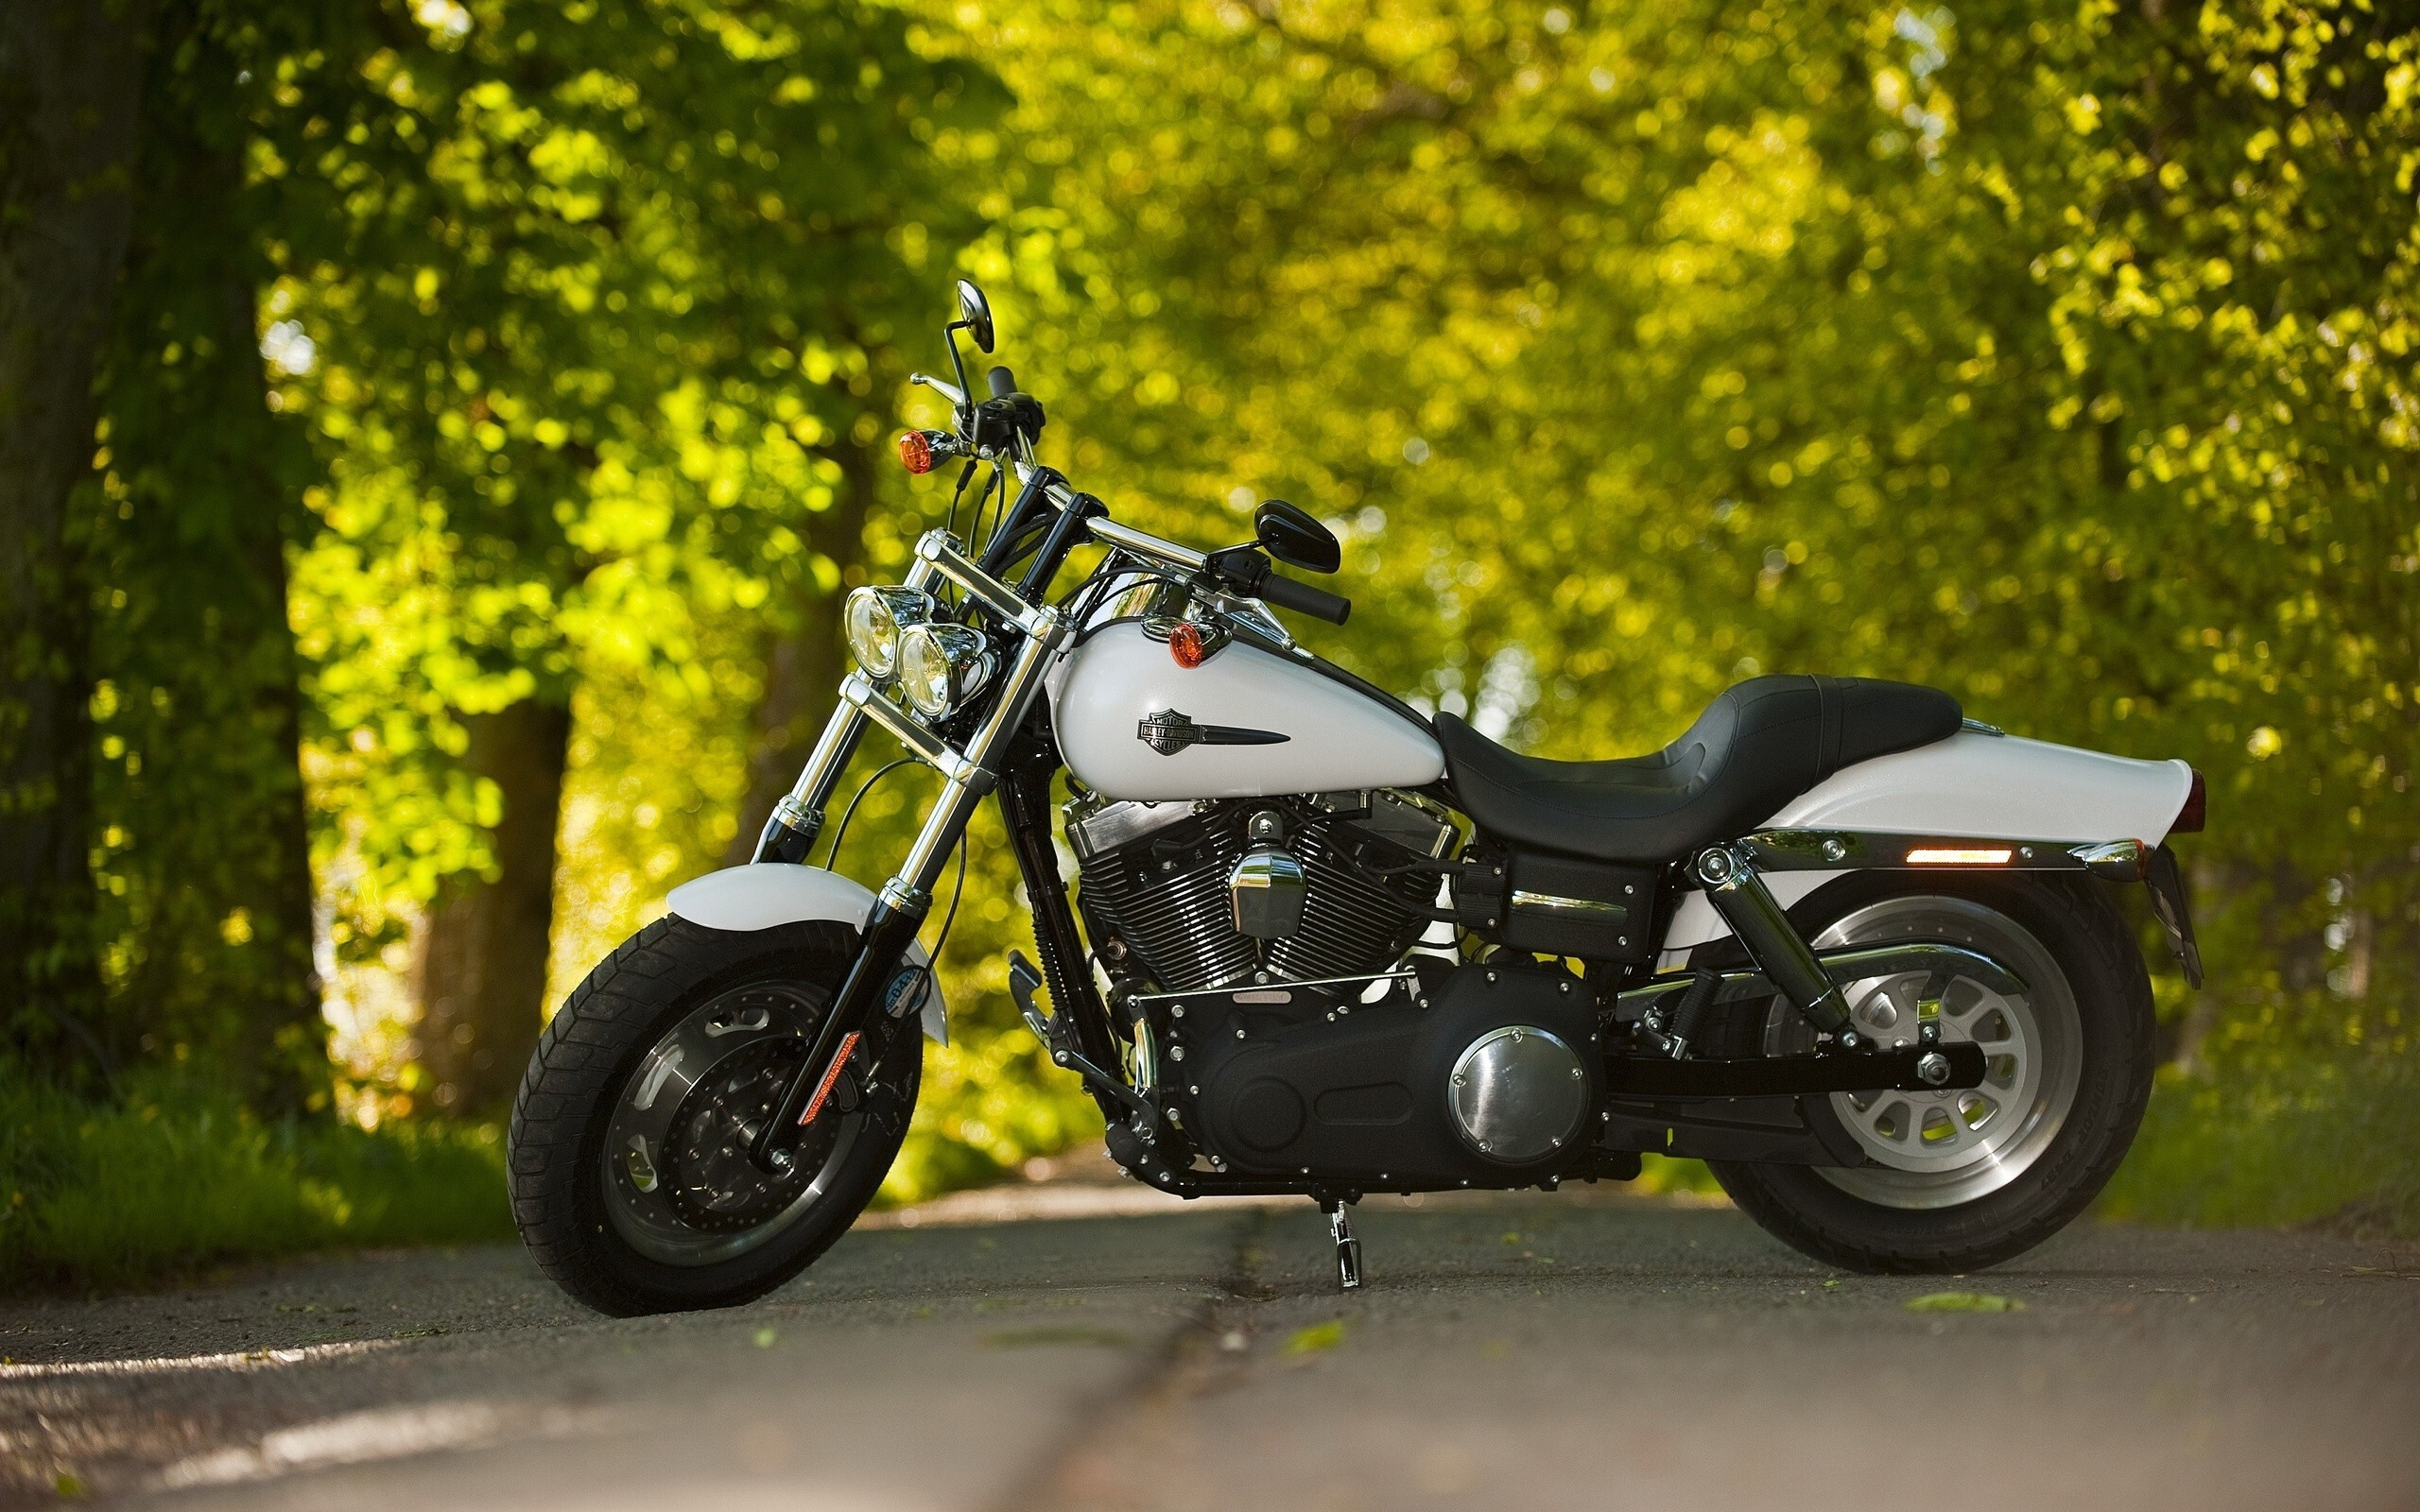 black and white harley davidson bike on road hd wallpapers | hd